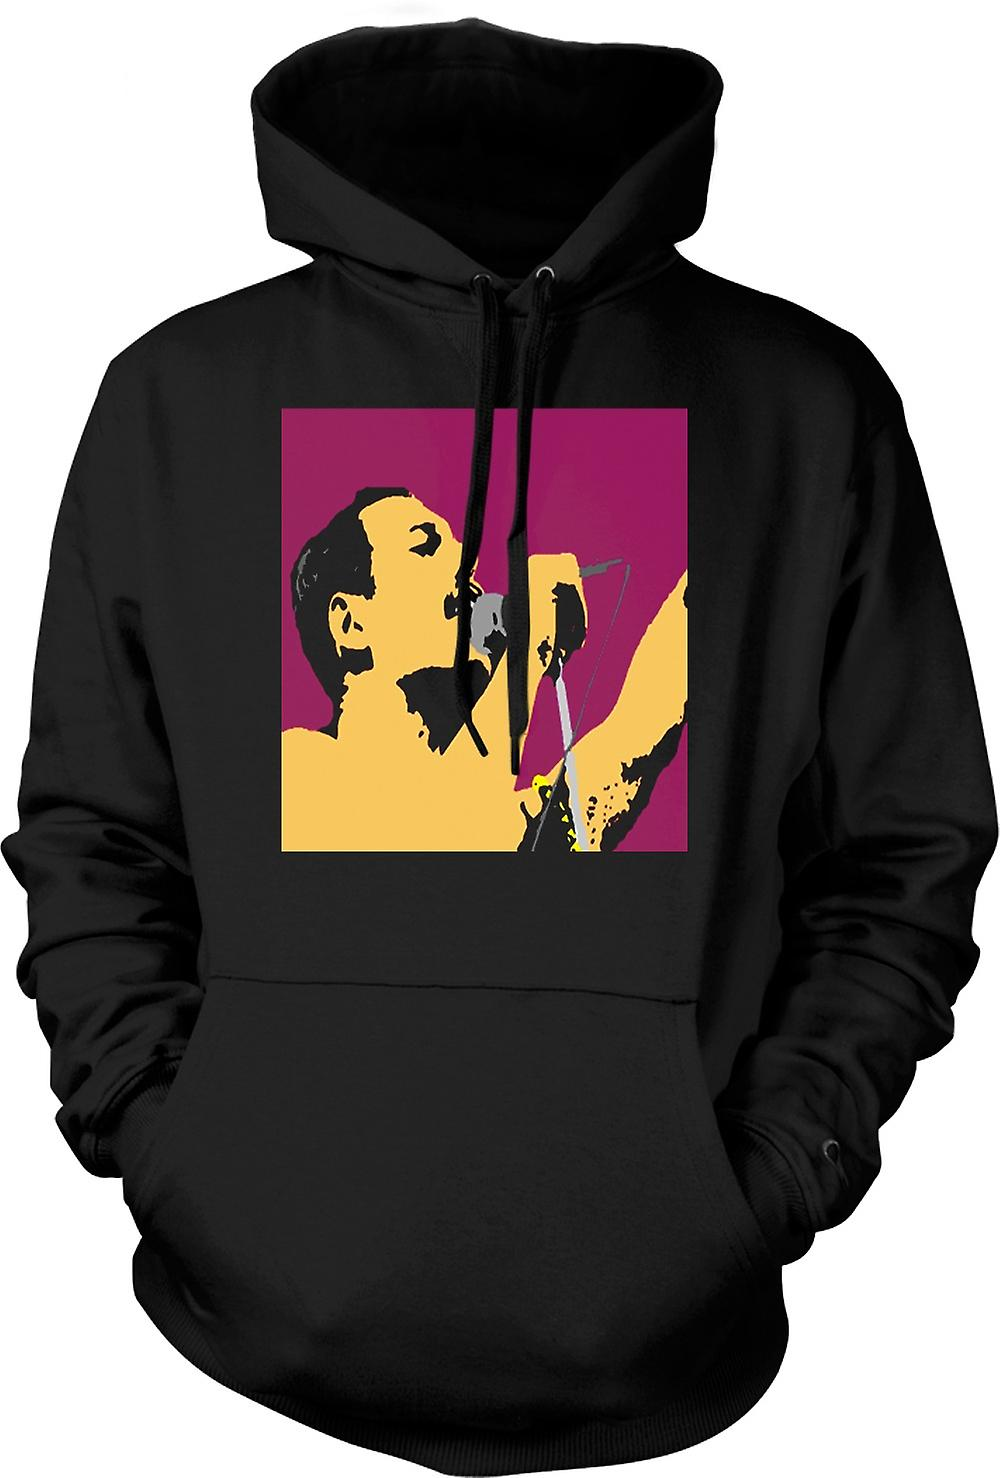 Kinder Hoodie - Freddie Mercury Gesang - Queen - Pop-Art